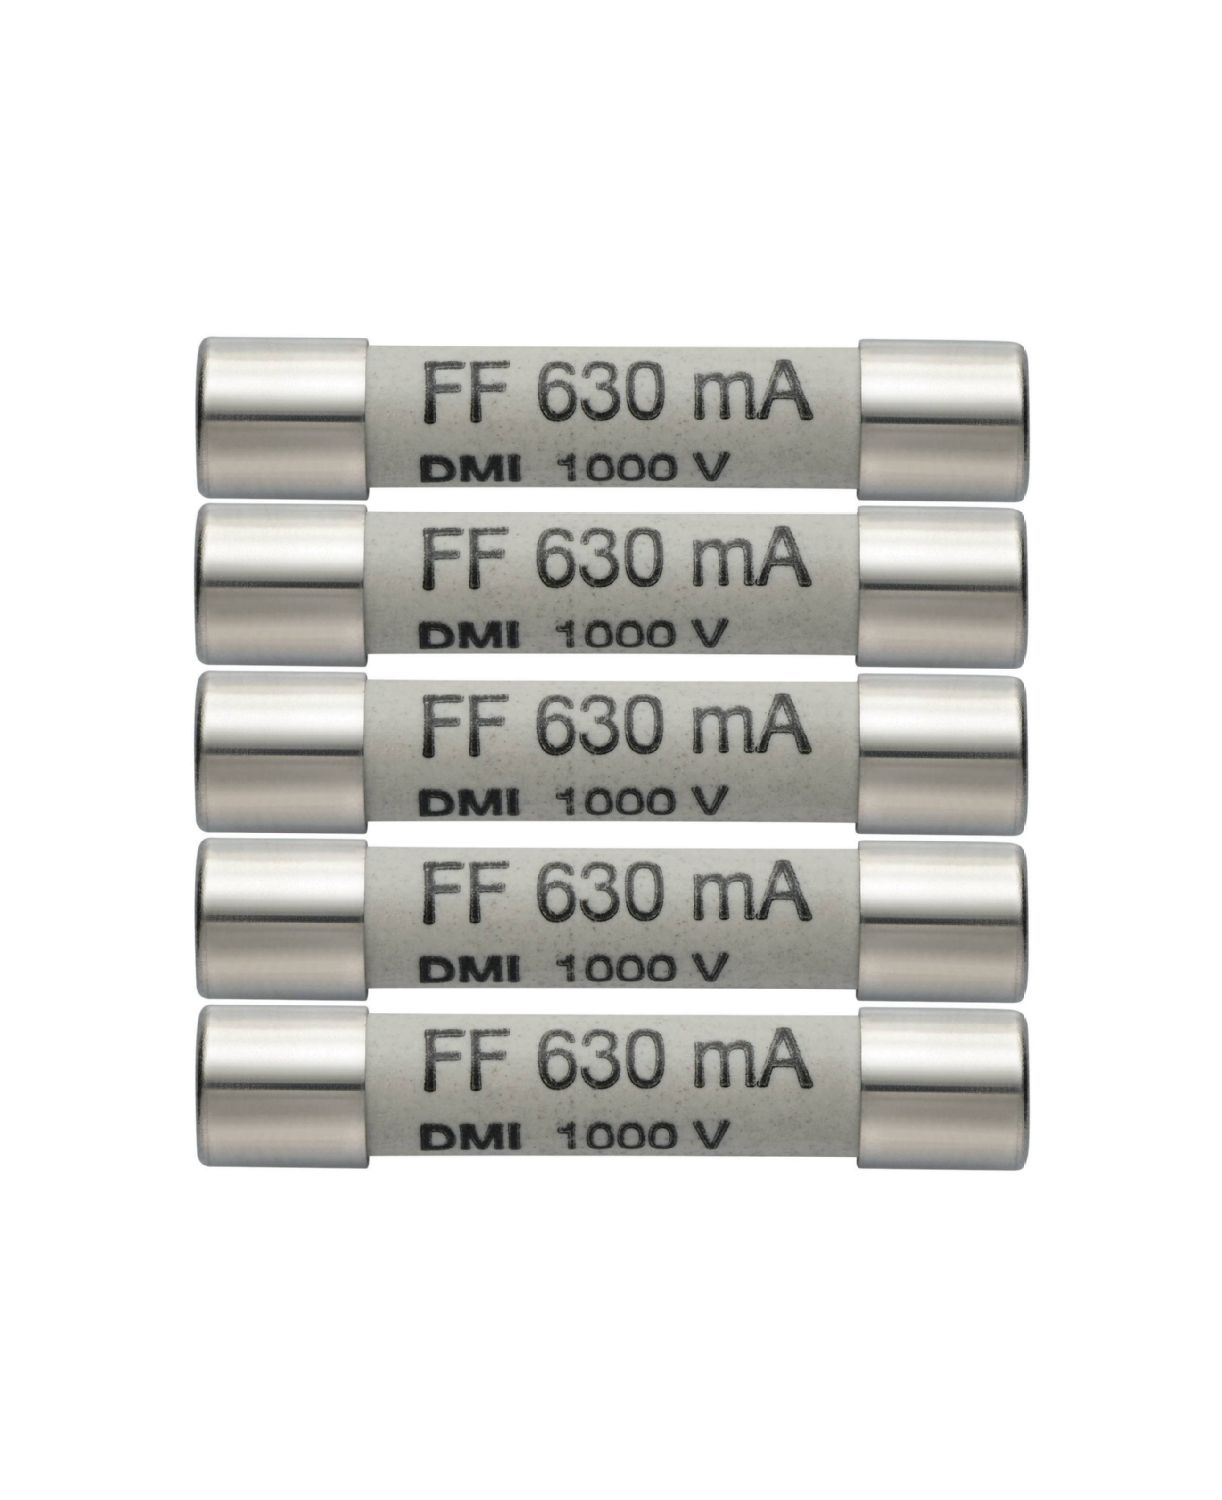 Fusibles de rechange 630 mA/1000 V 0590 0006